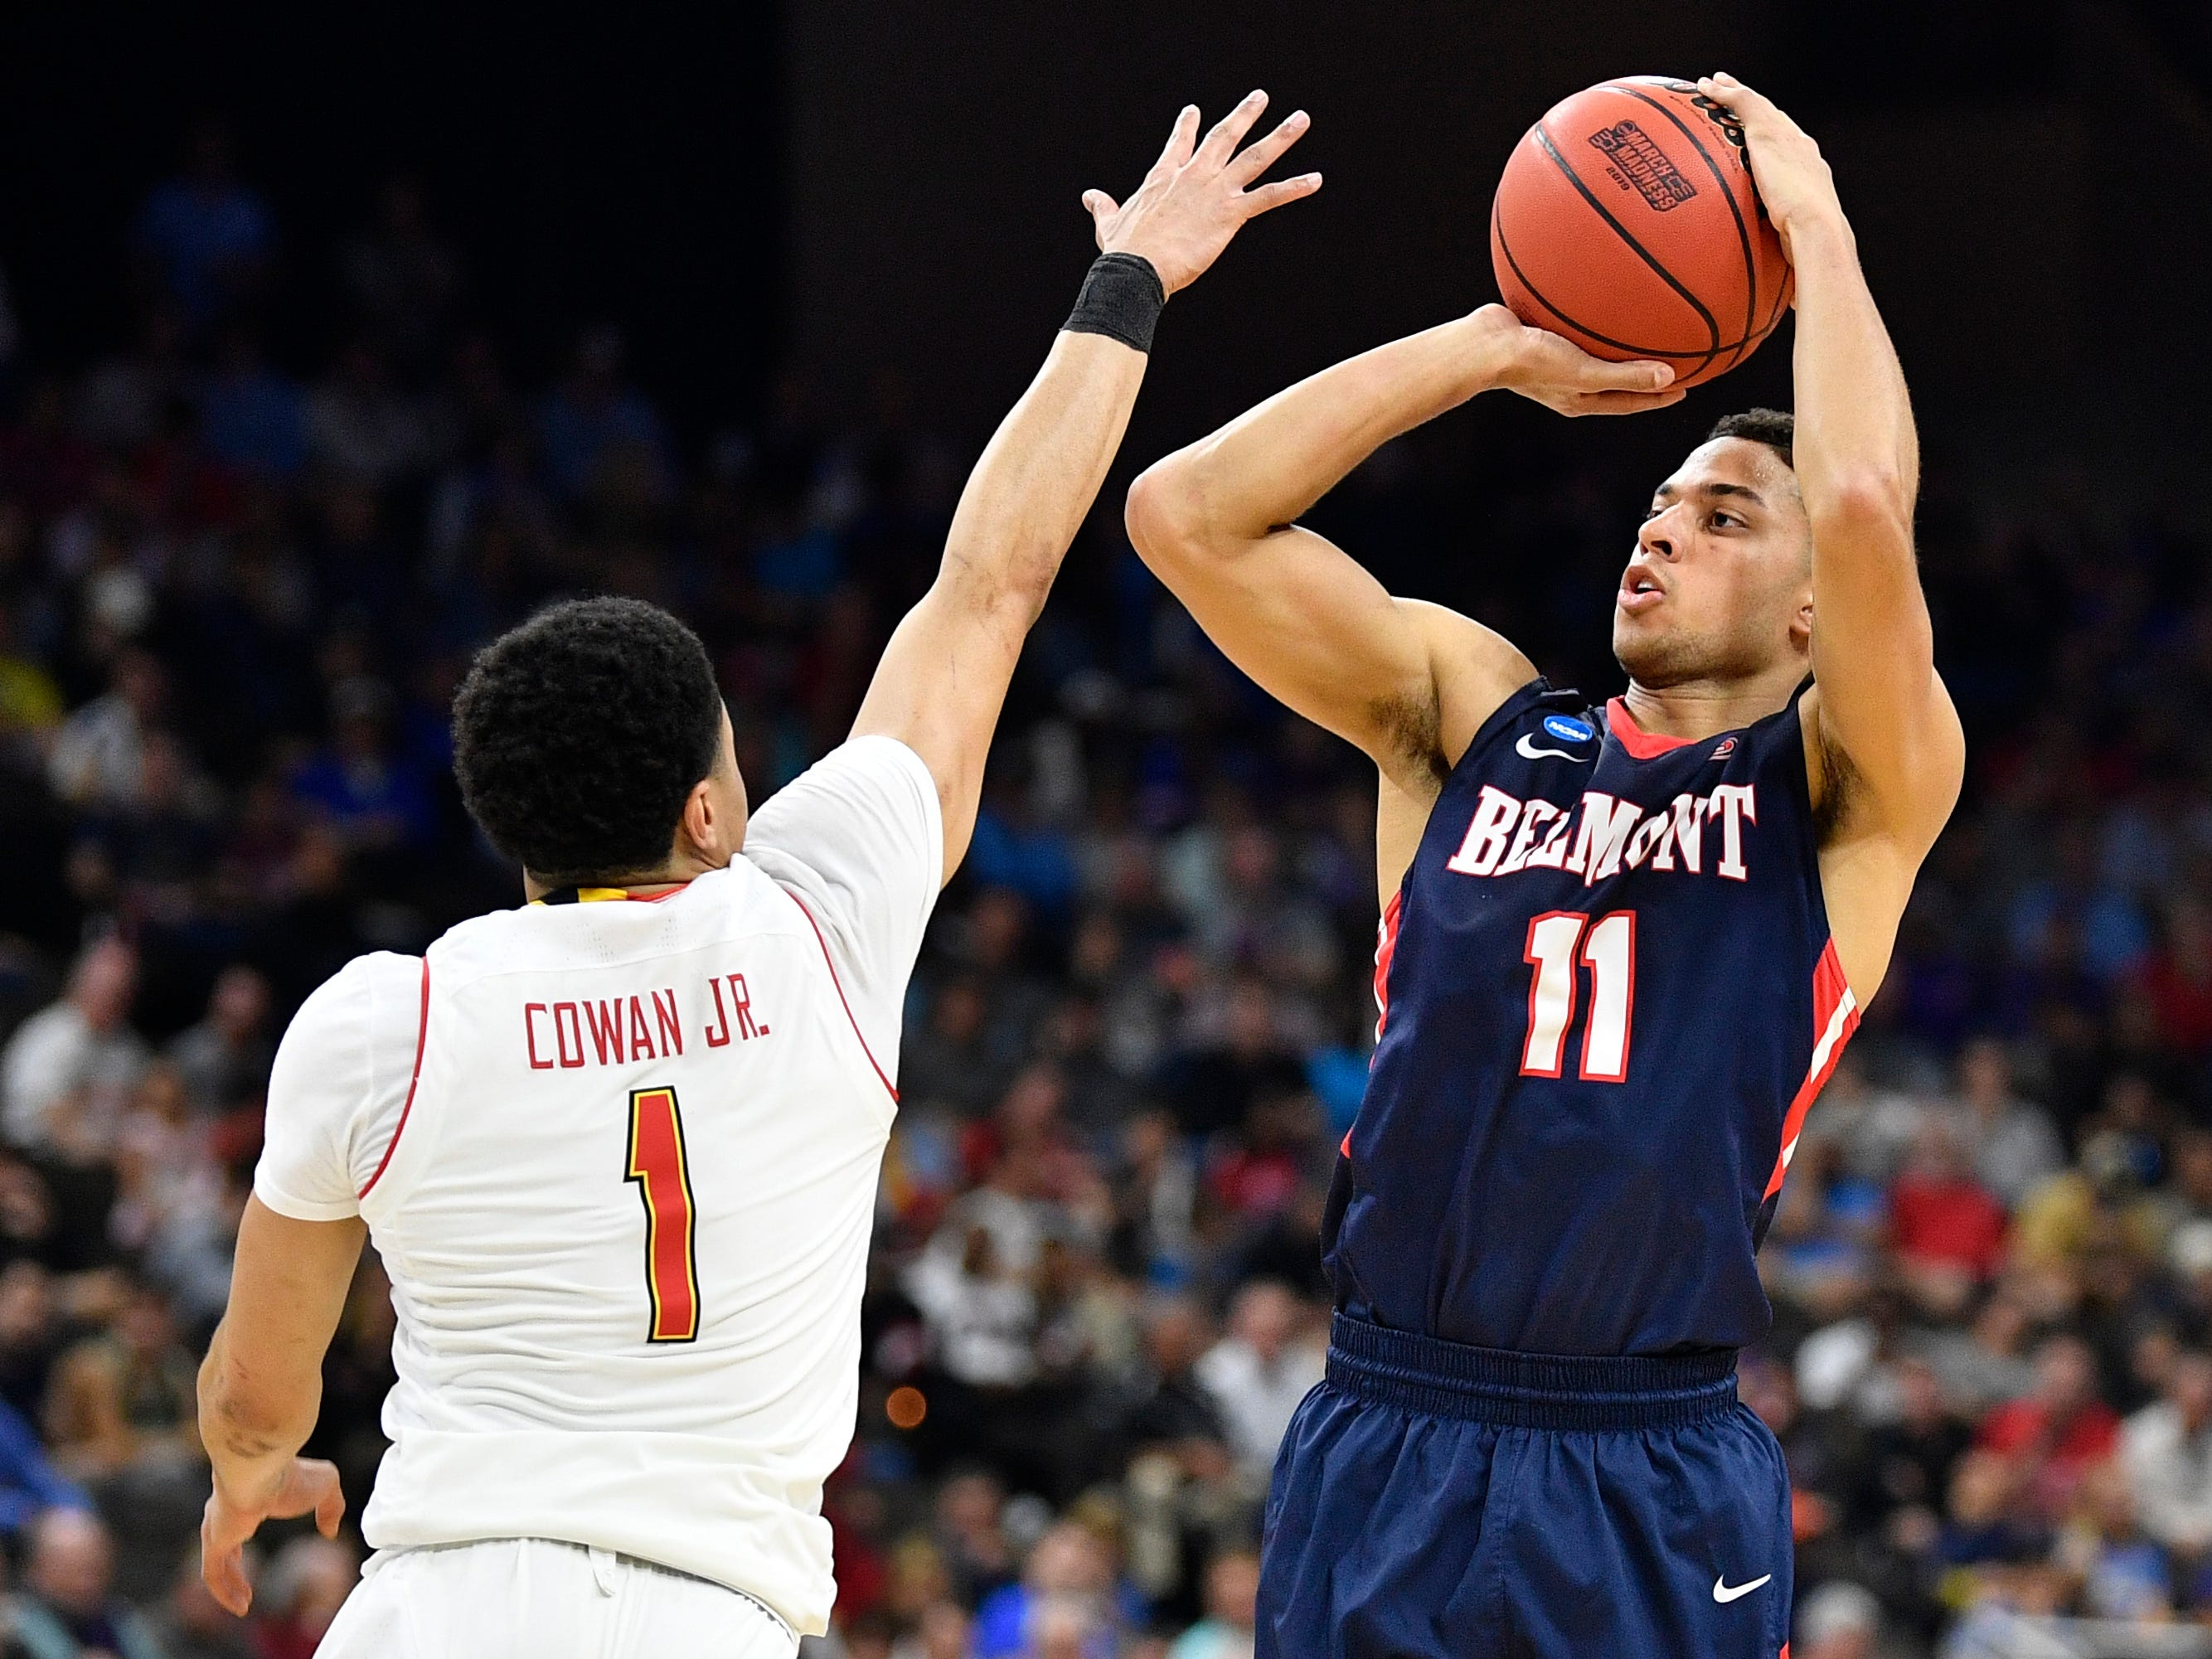 Belmont guard Kevin McClain (11) shoots over Maryland guard Anthony Cowan Jr. (1) during the first half of the first-round NCAA college basketball tournament game at VyStar Veterans Memorial Arena in Jacksonville, Fla., Thursday, March 21, 2019.